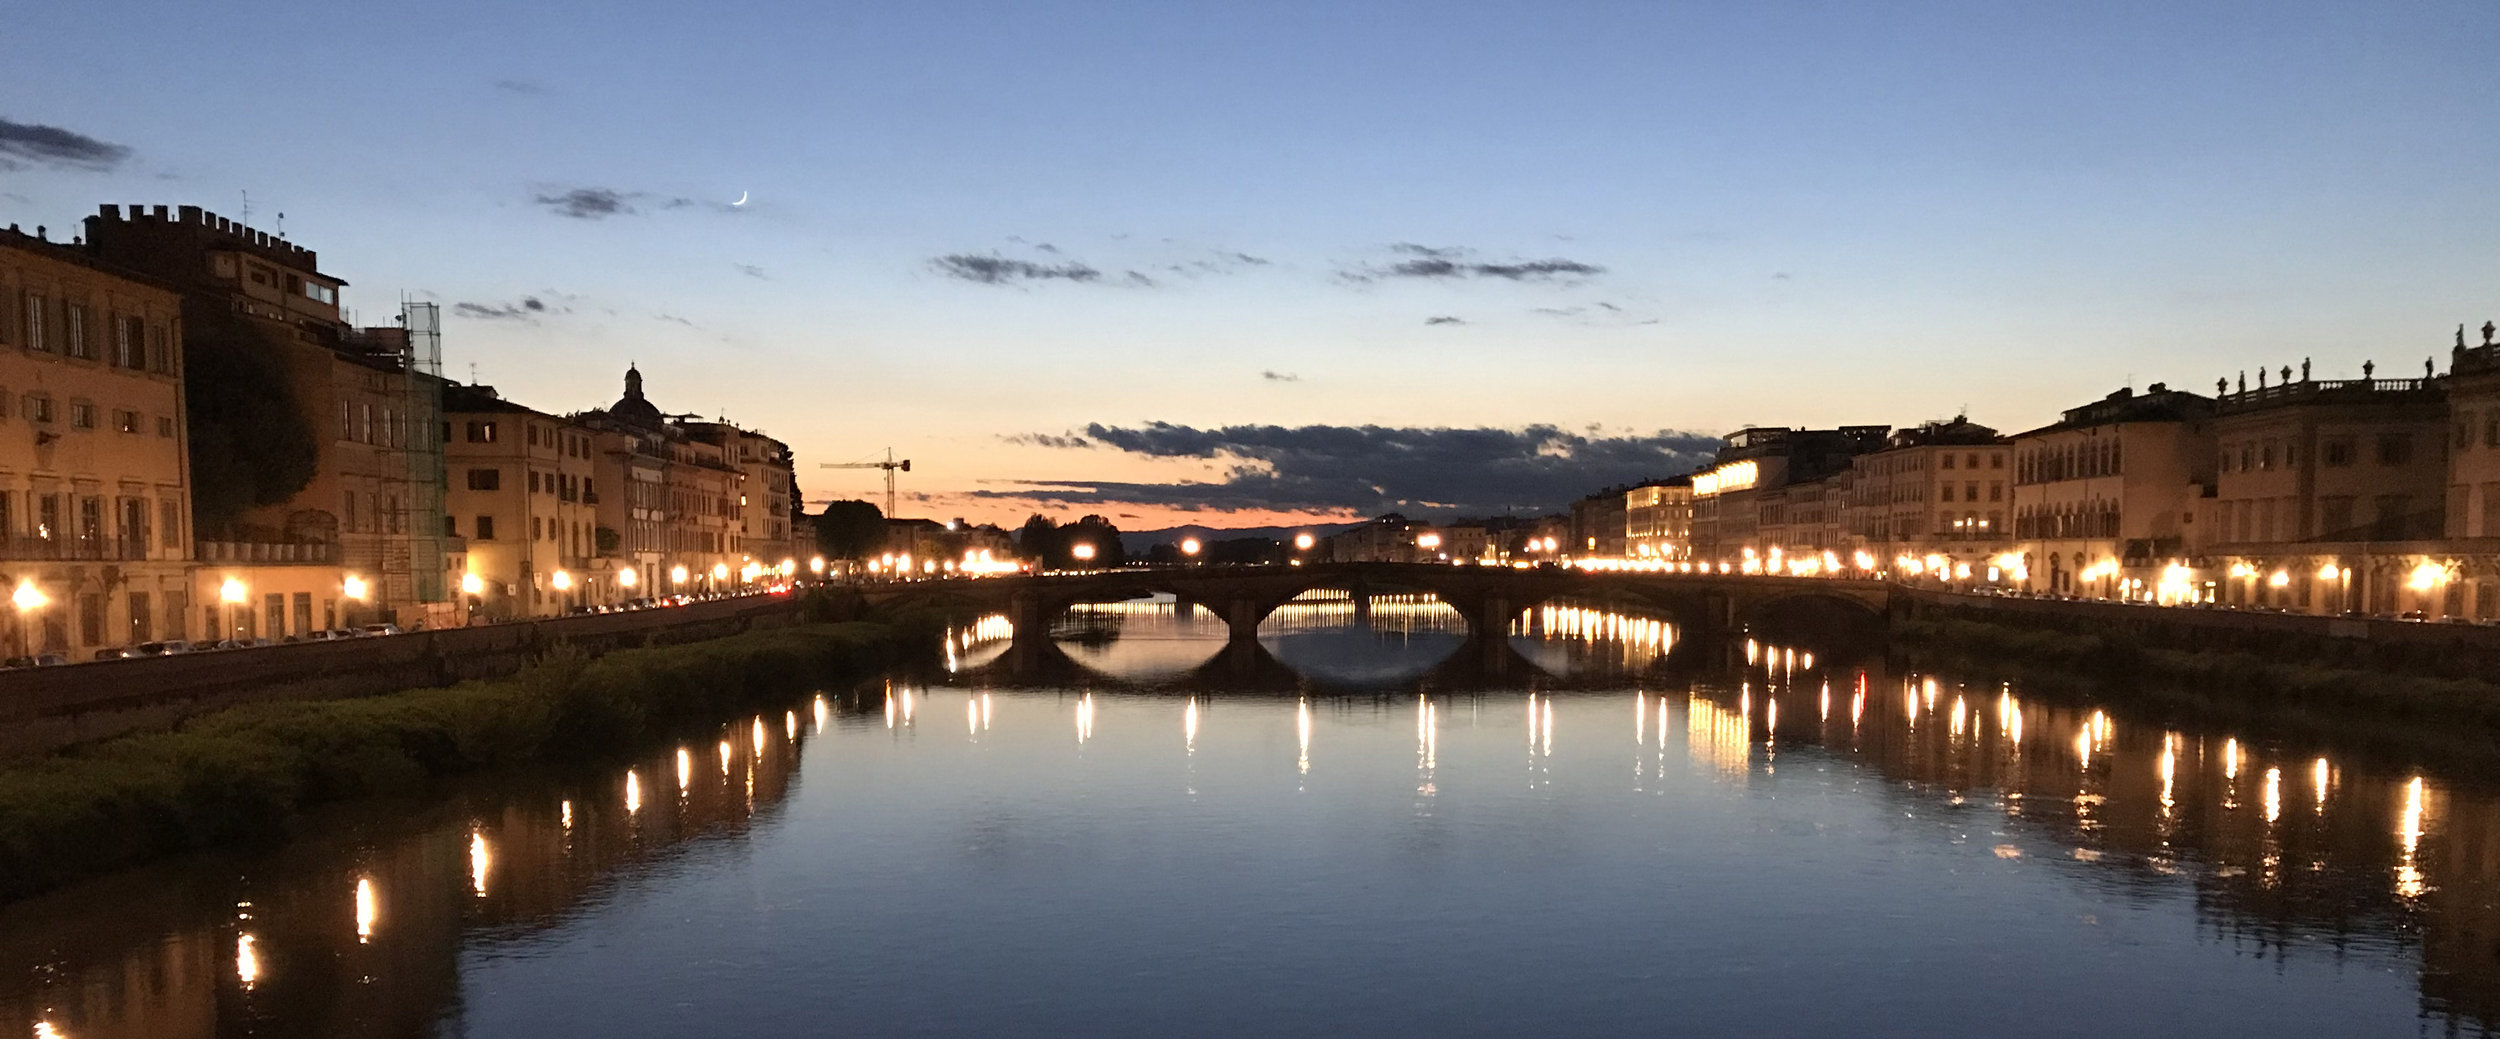 Sundown from one of the bridges crossing the Arno River in the heart of Florence.